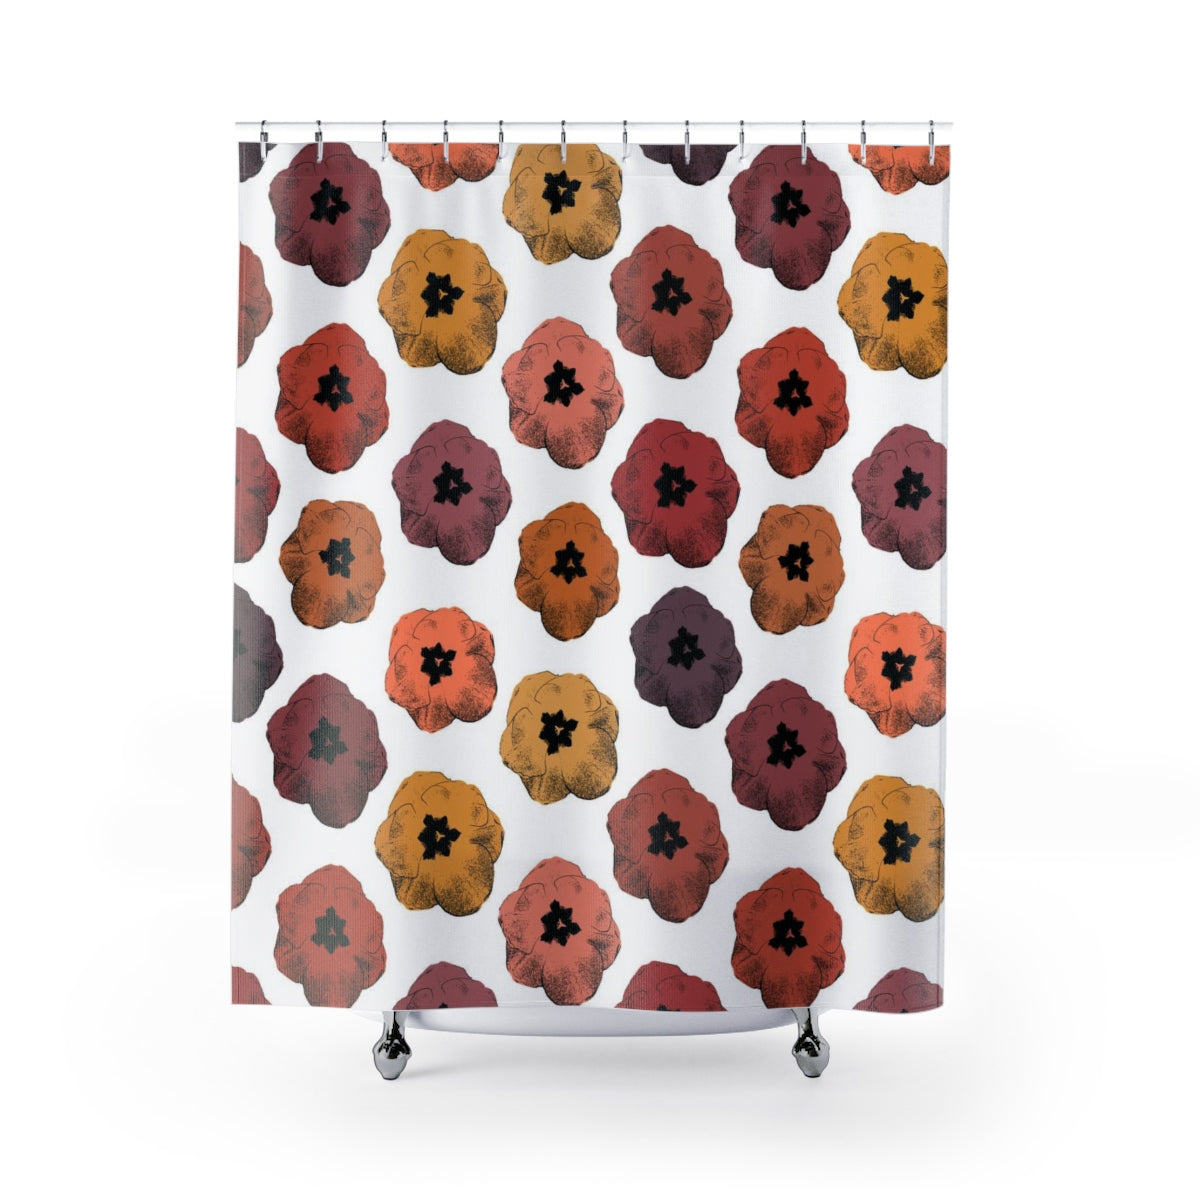 Retro Pop Art Tulip Print Shower Curtain in Reds, Oranges, Pinks, Yellows and Purples - Metro Shower Curtains